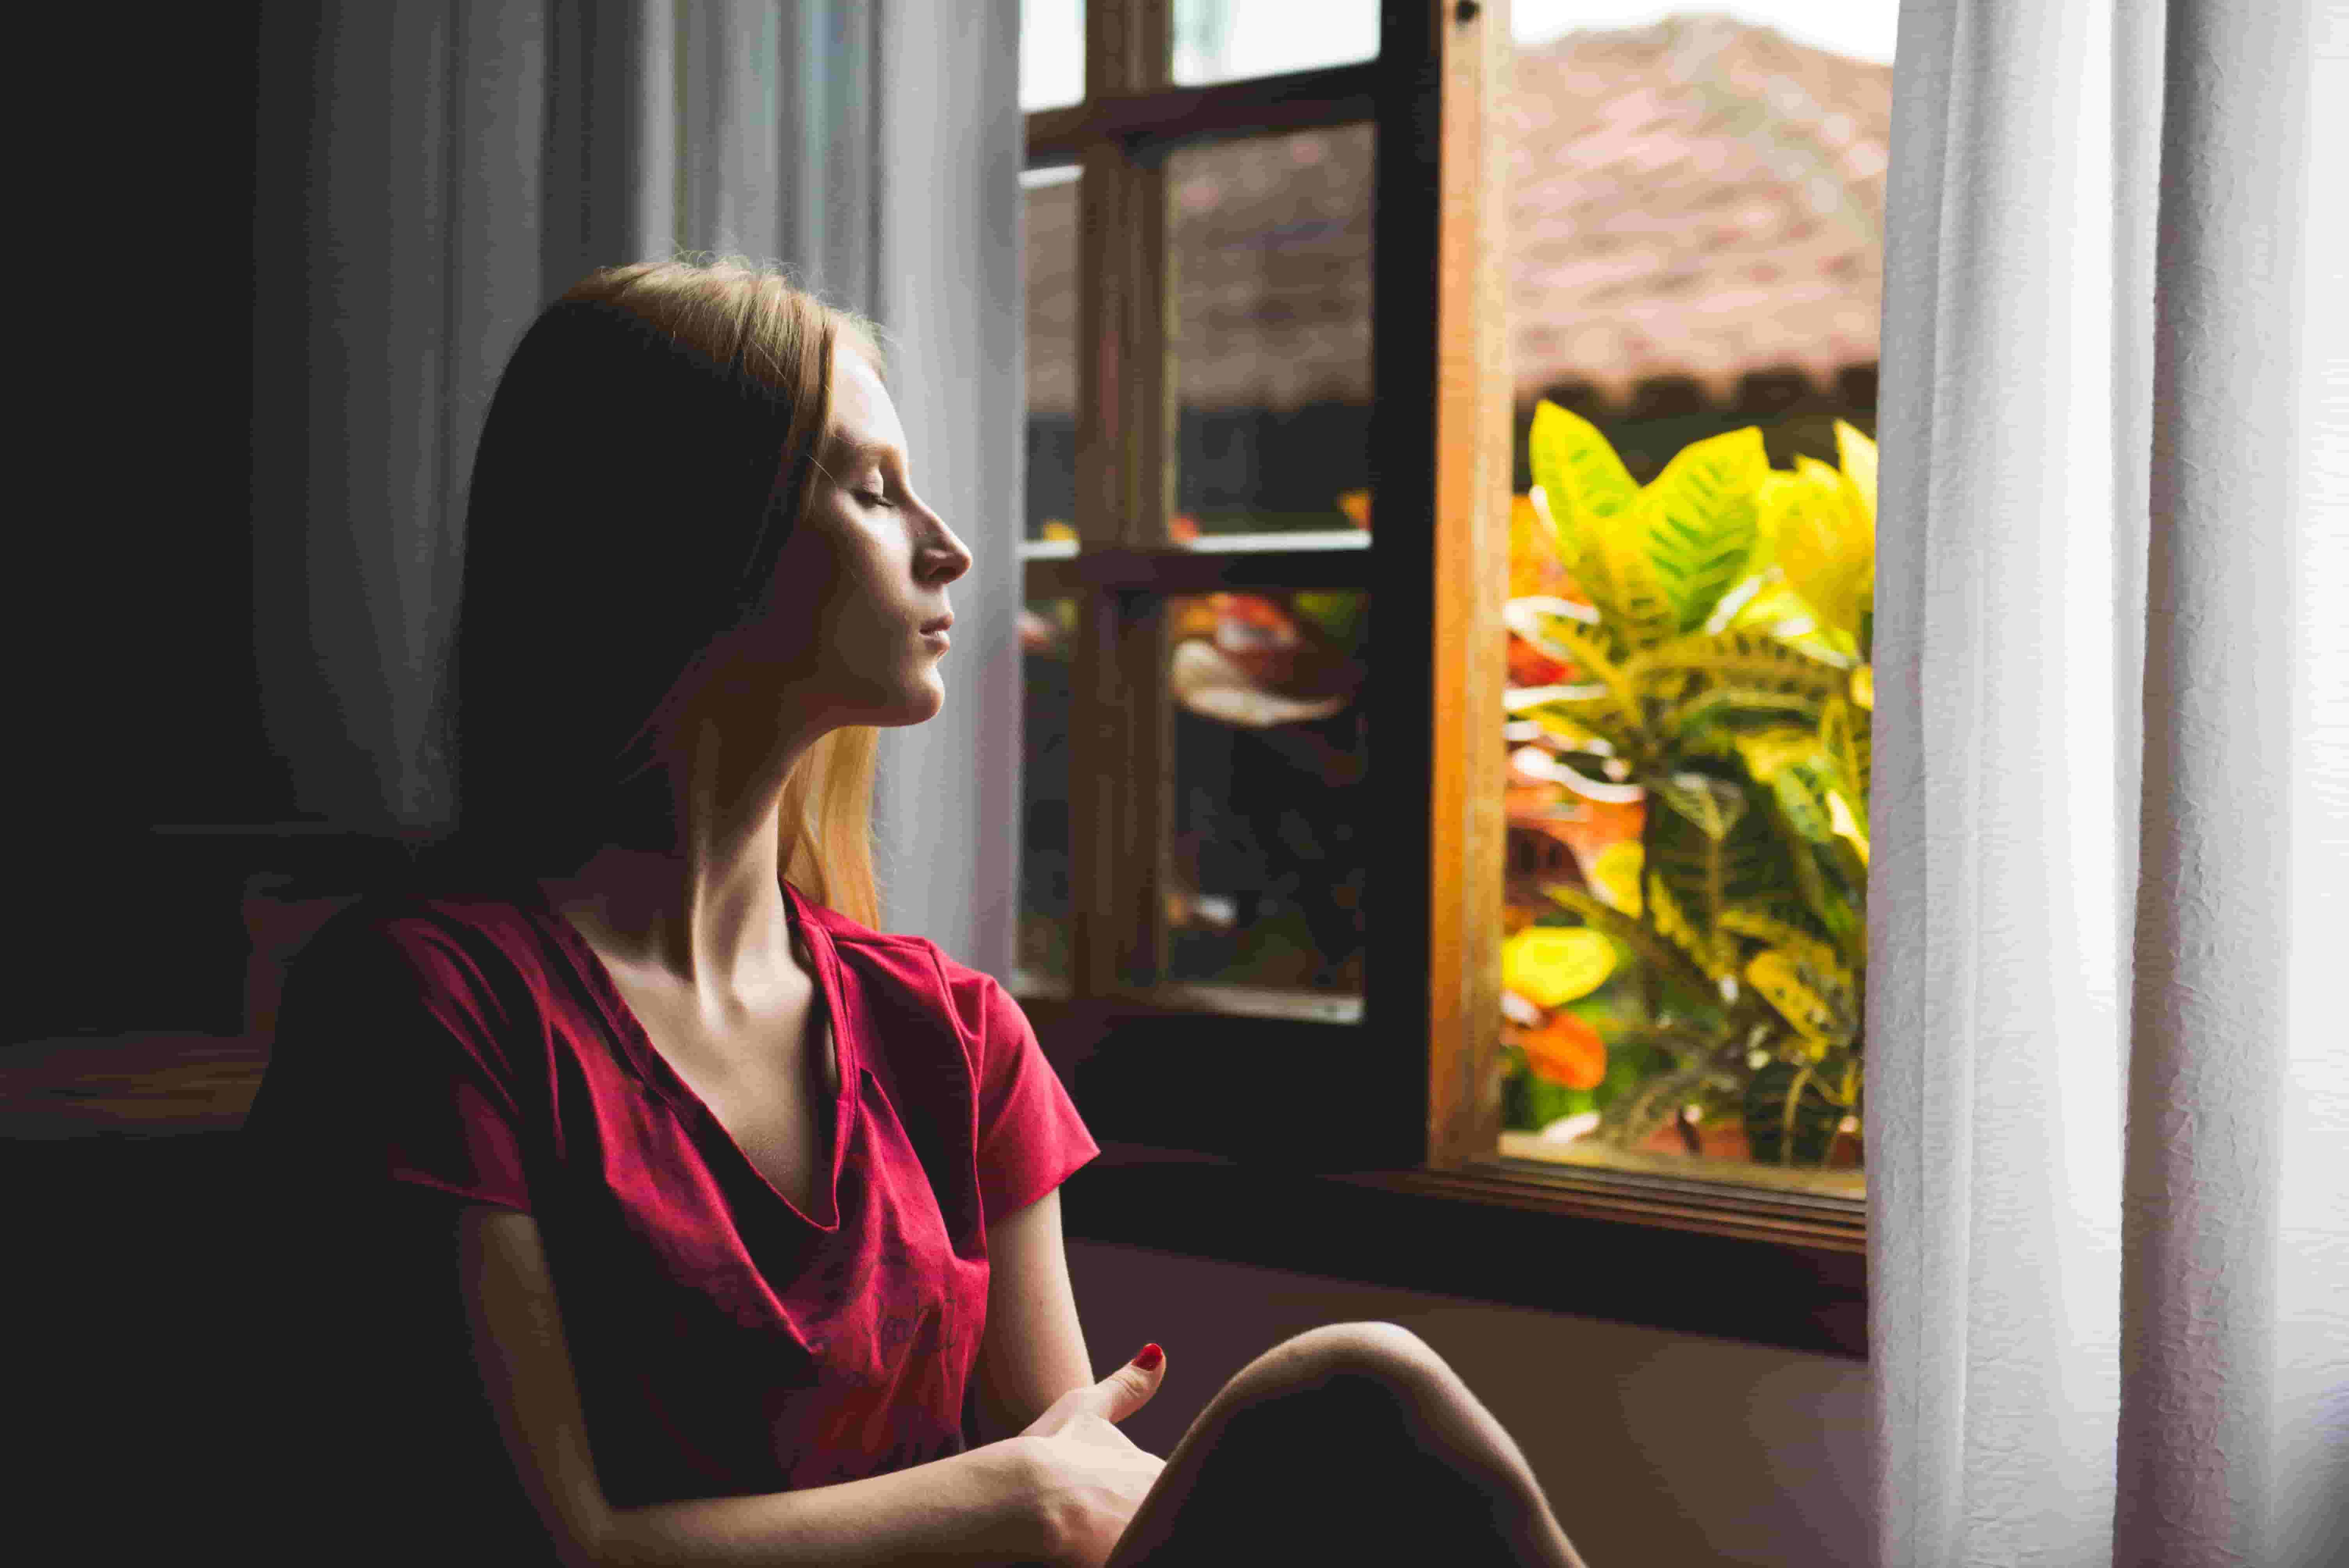 A woman sits by an open window, practicing mindfulness